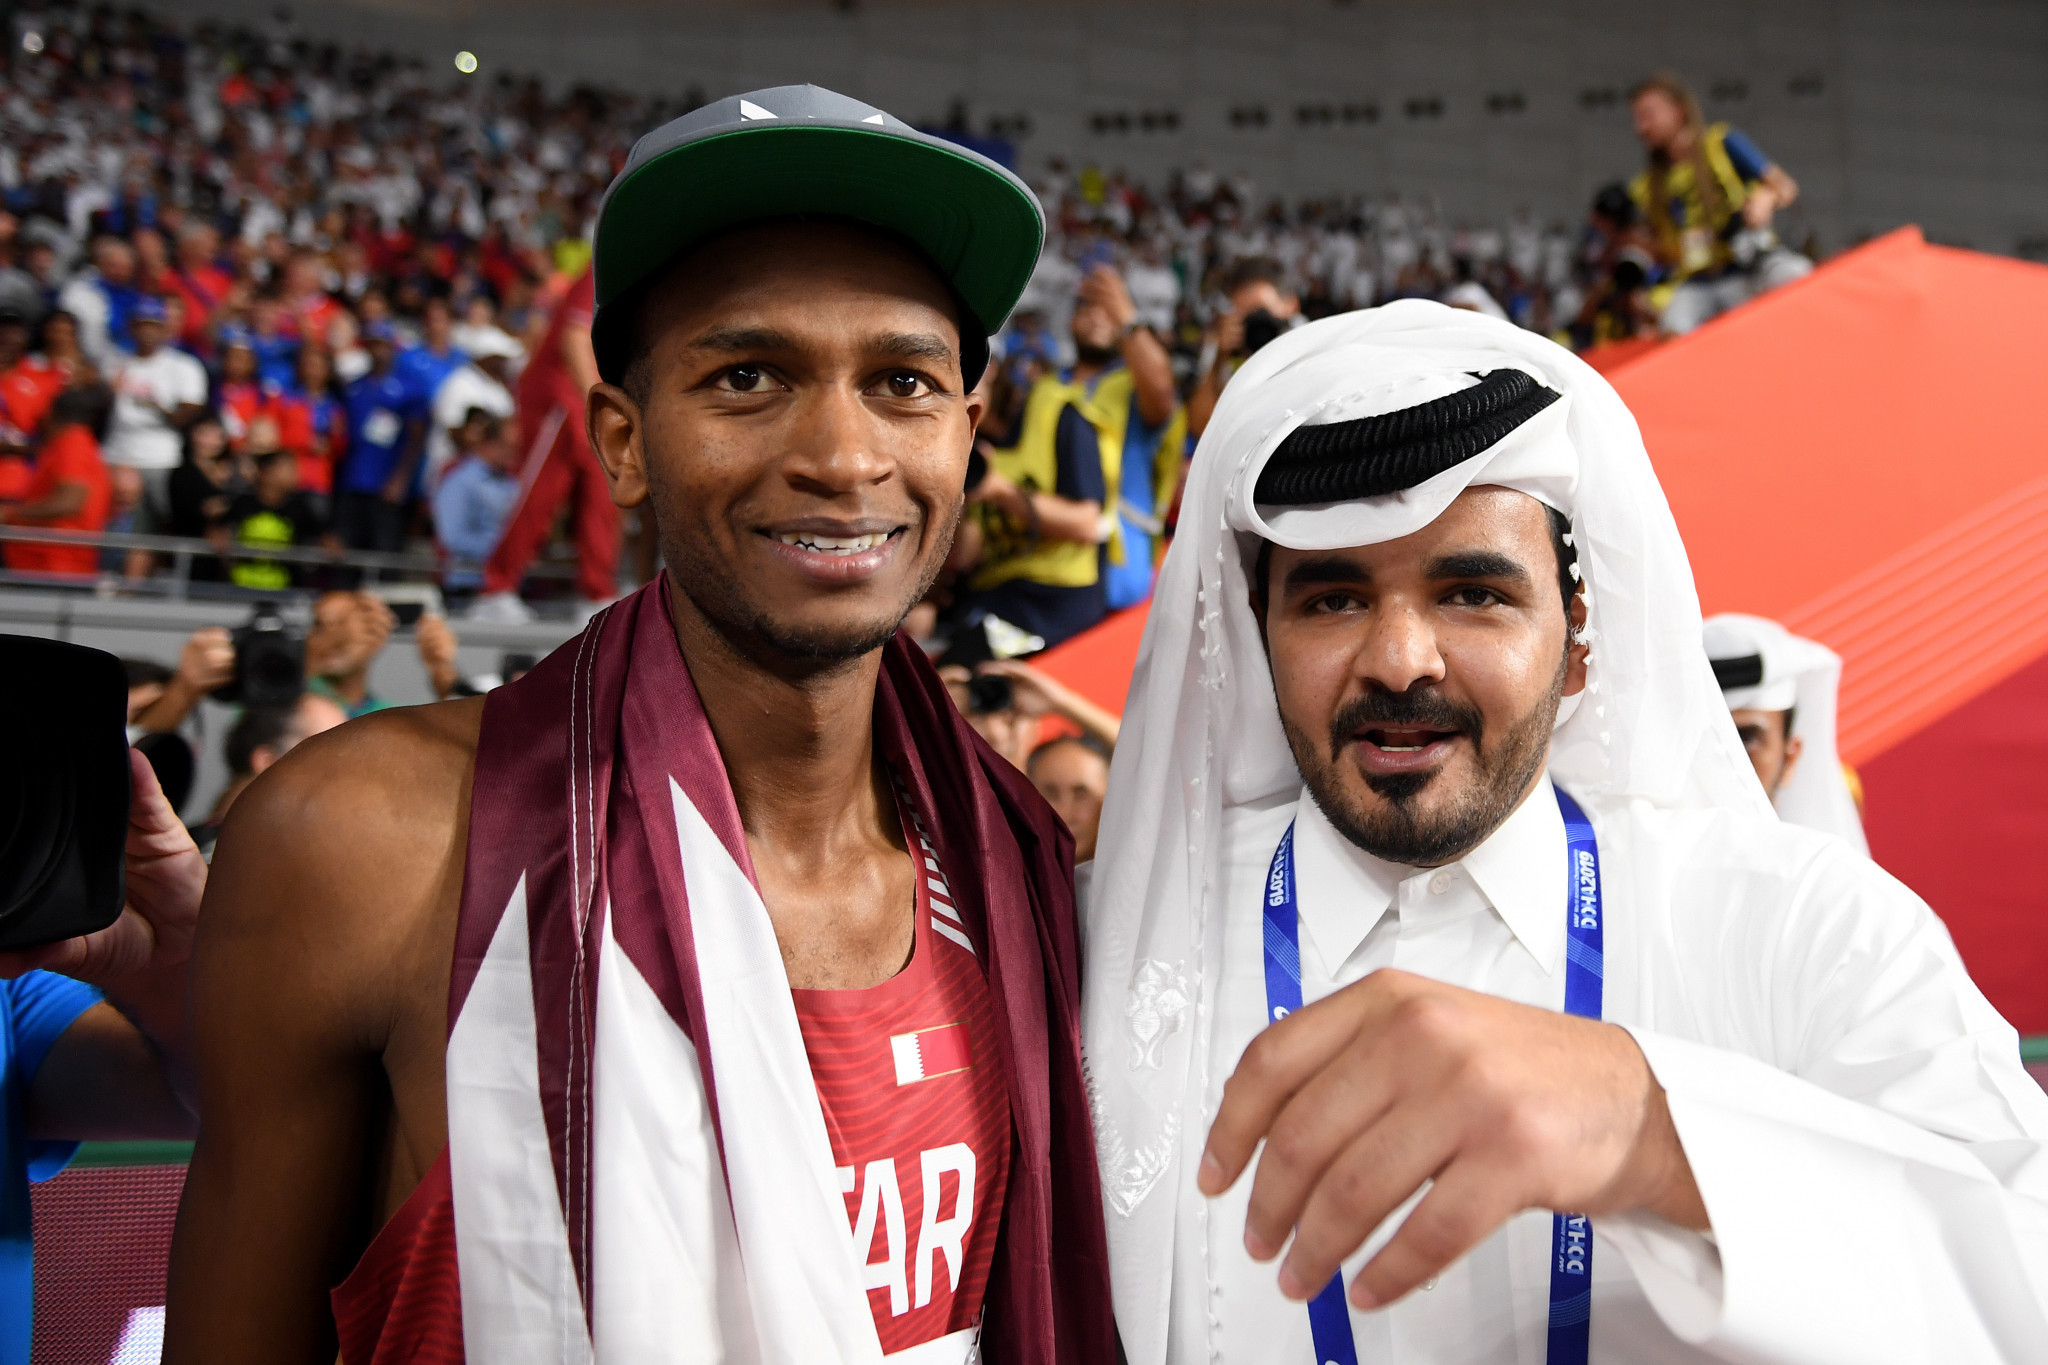 Barshim brings home the gold Qatar expected